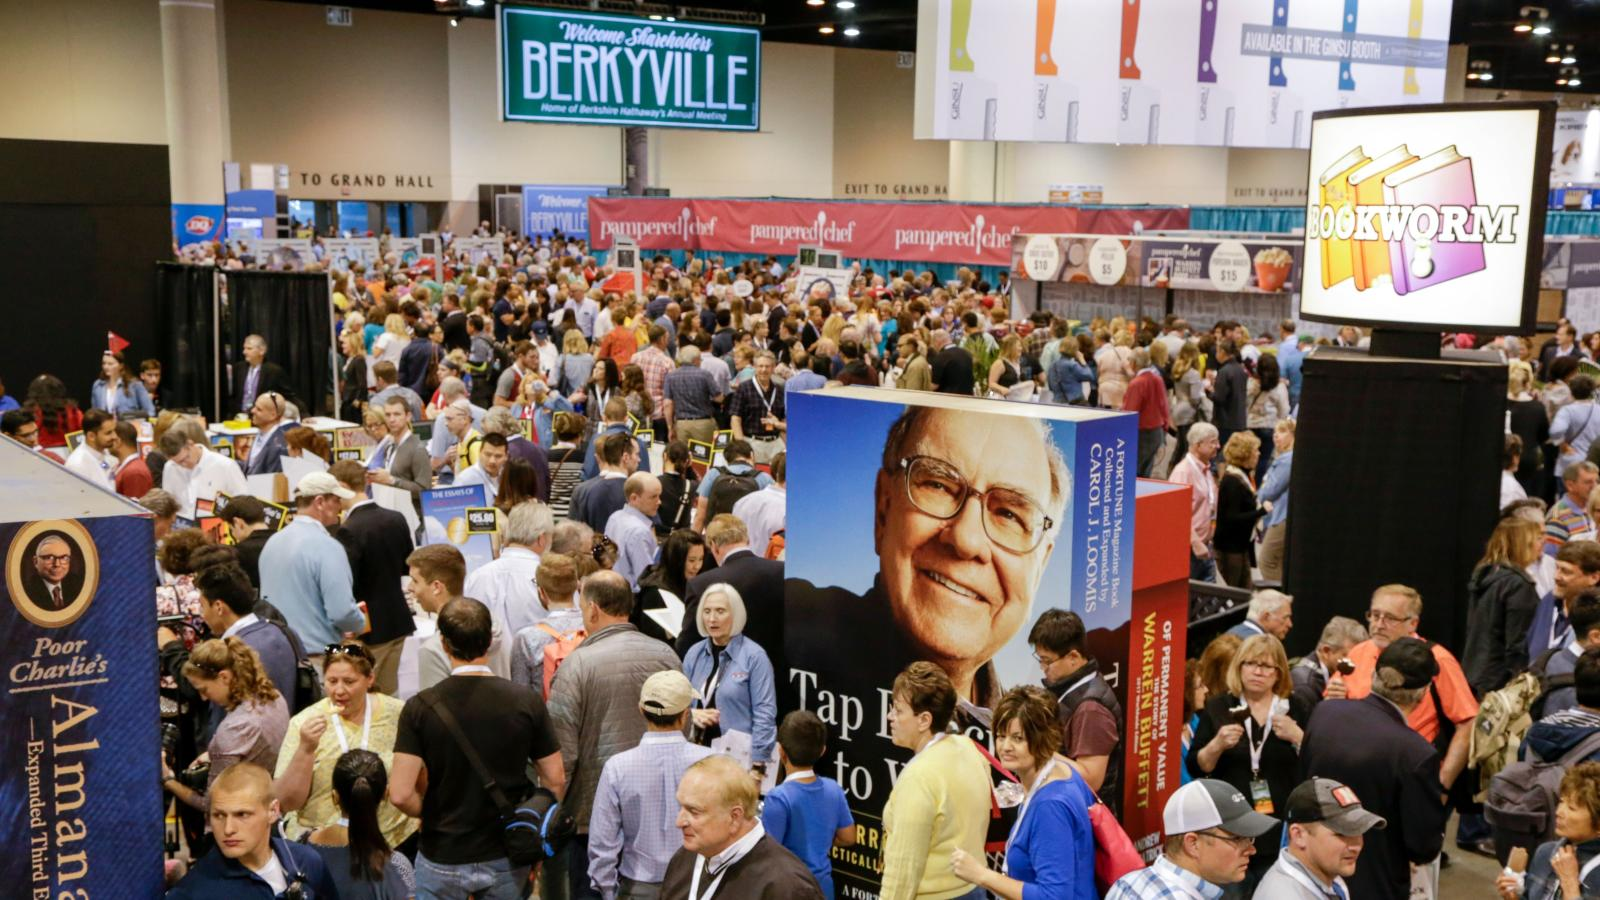 The cult of Warren Buffett and the Berkshire Hathaway annual meeting